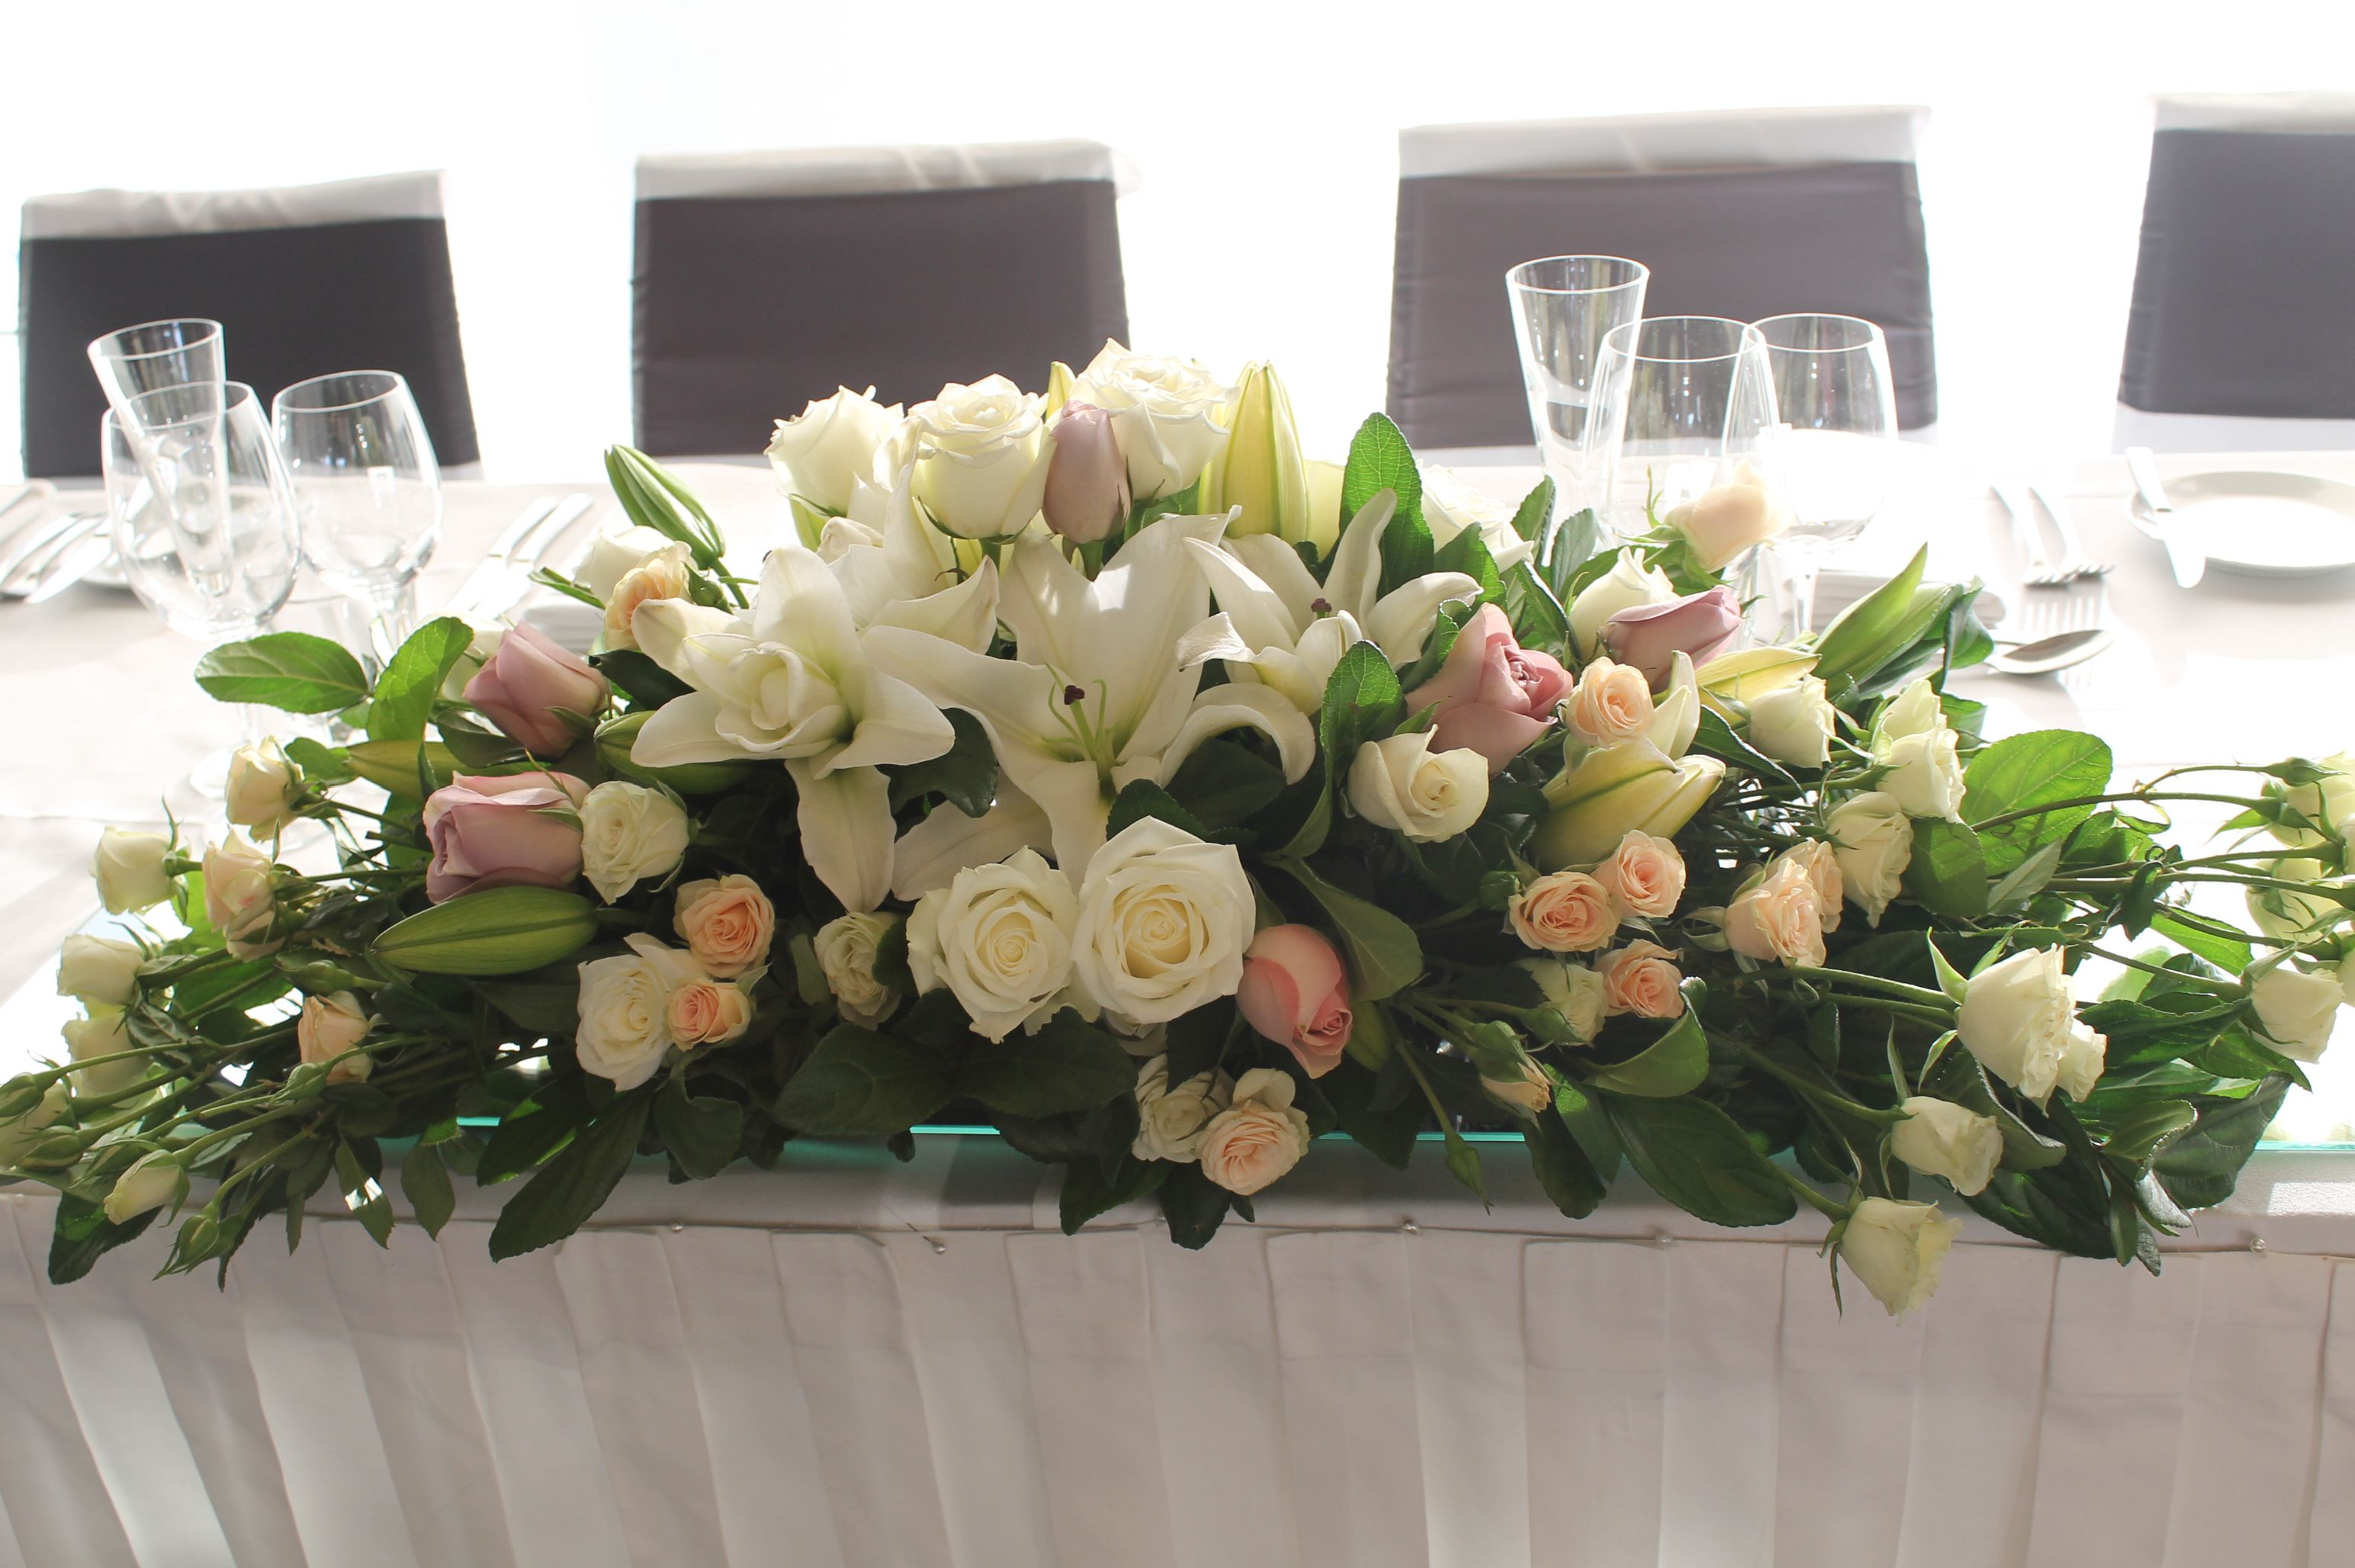 Bridal Table Floral Arrangement Of Fresh Roses And Lisianthus